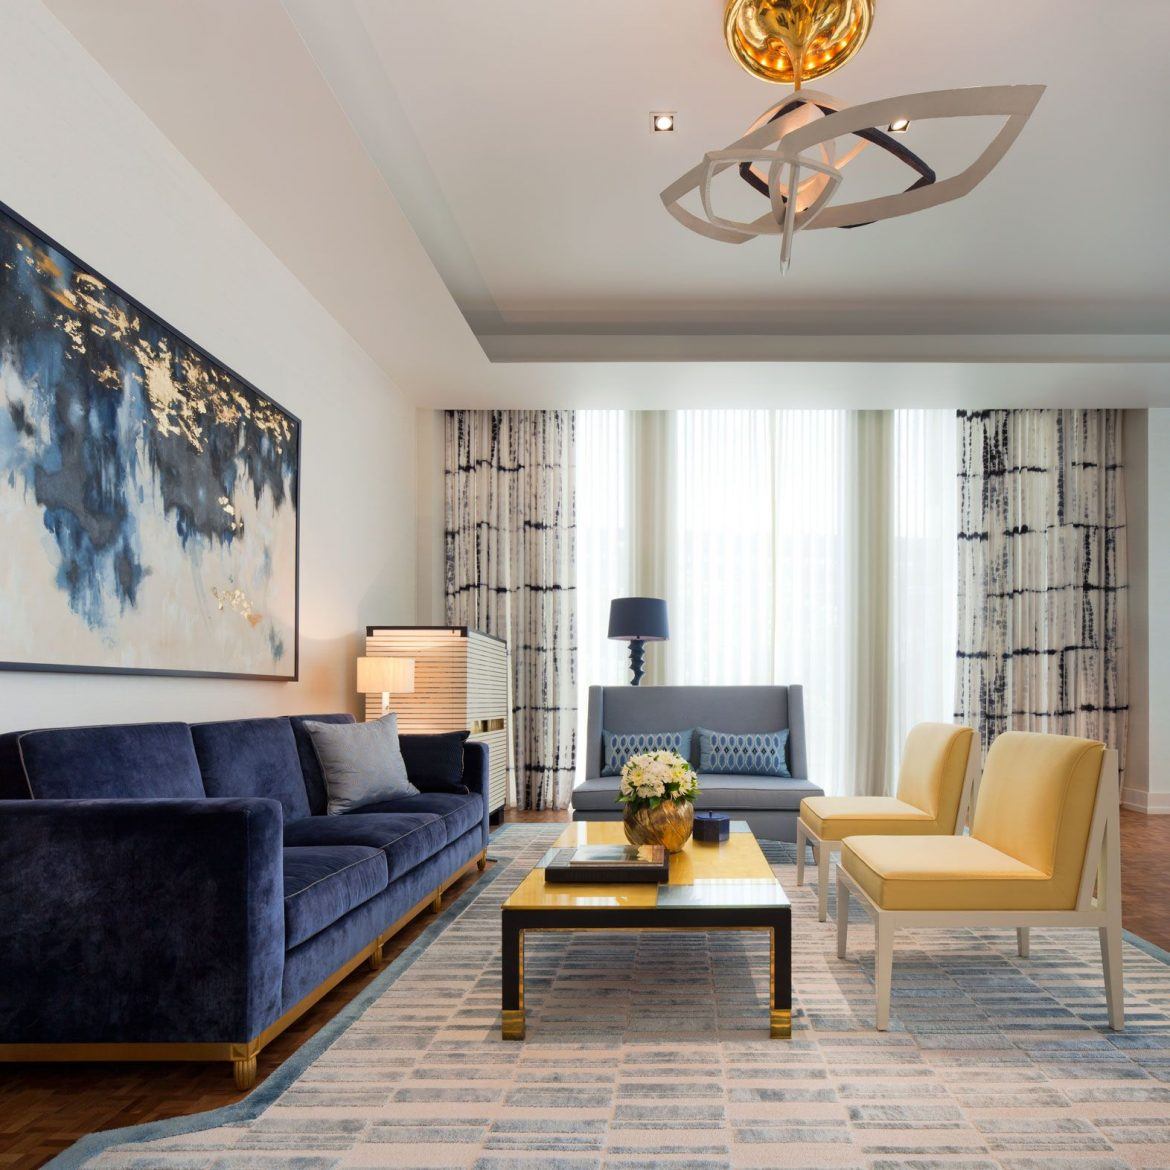 Best Living Room Design Inspirations By The Top London-Based Designers living room design Best Living Room Design Inspirations By The Top London-Based Designers Best Living Room Design Inspirations By The Top London Based Designers 18